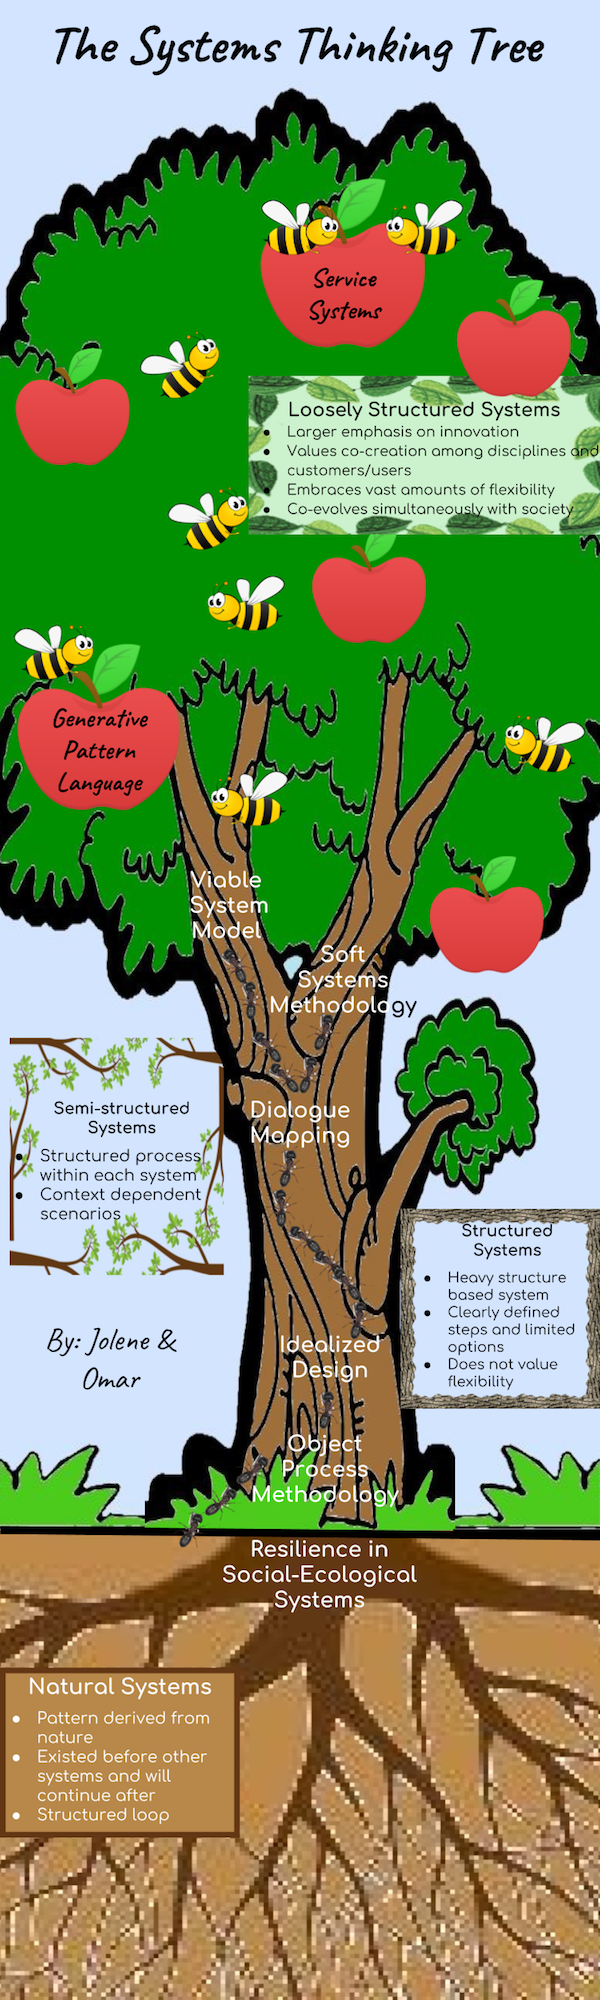 The Systems Thinking Tree, Jolene Hurtubise and Omar Khattab